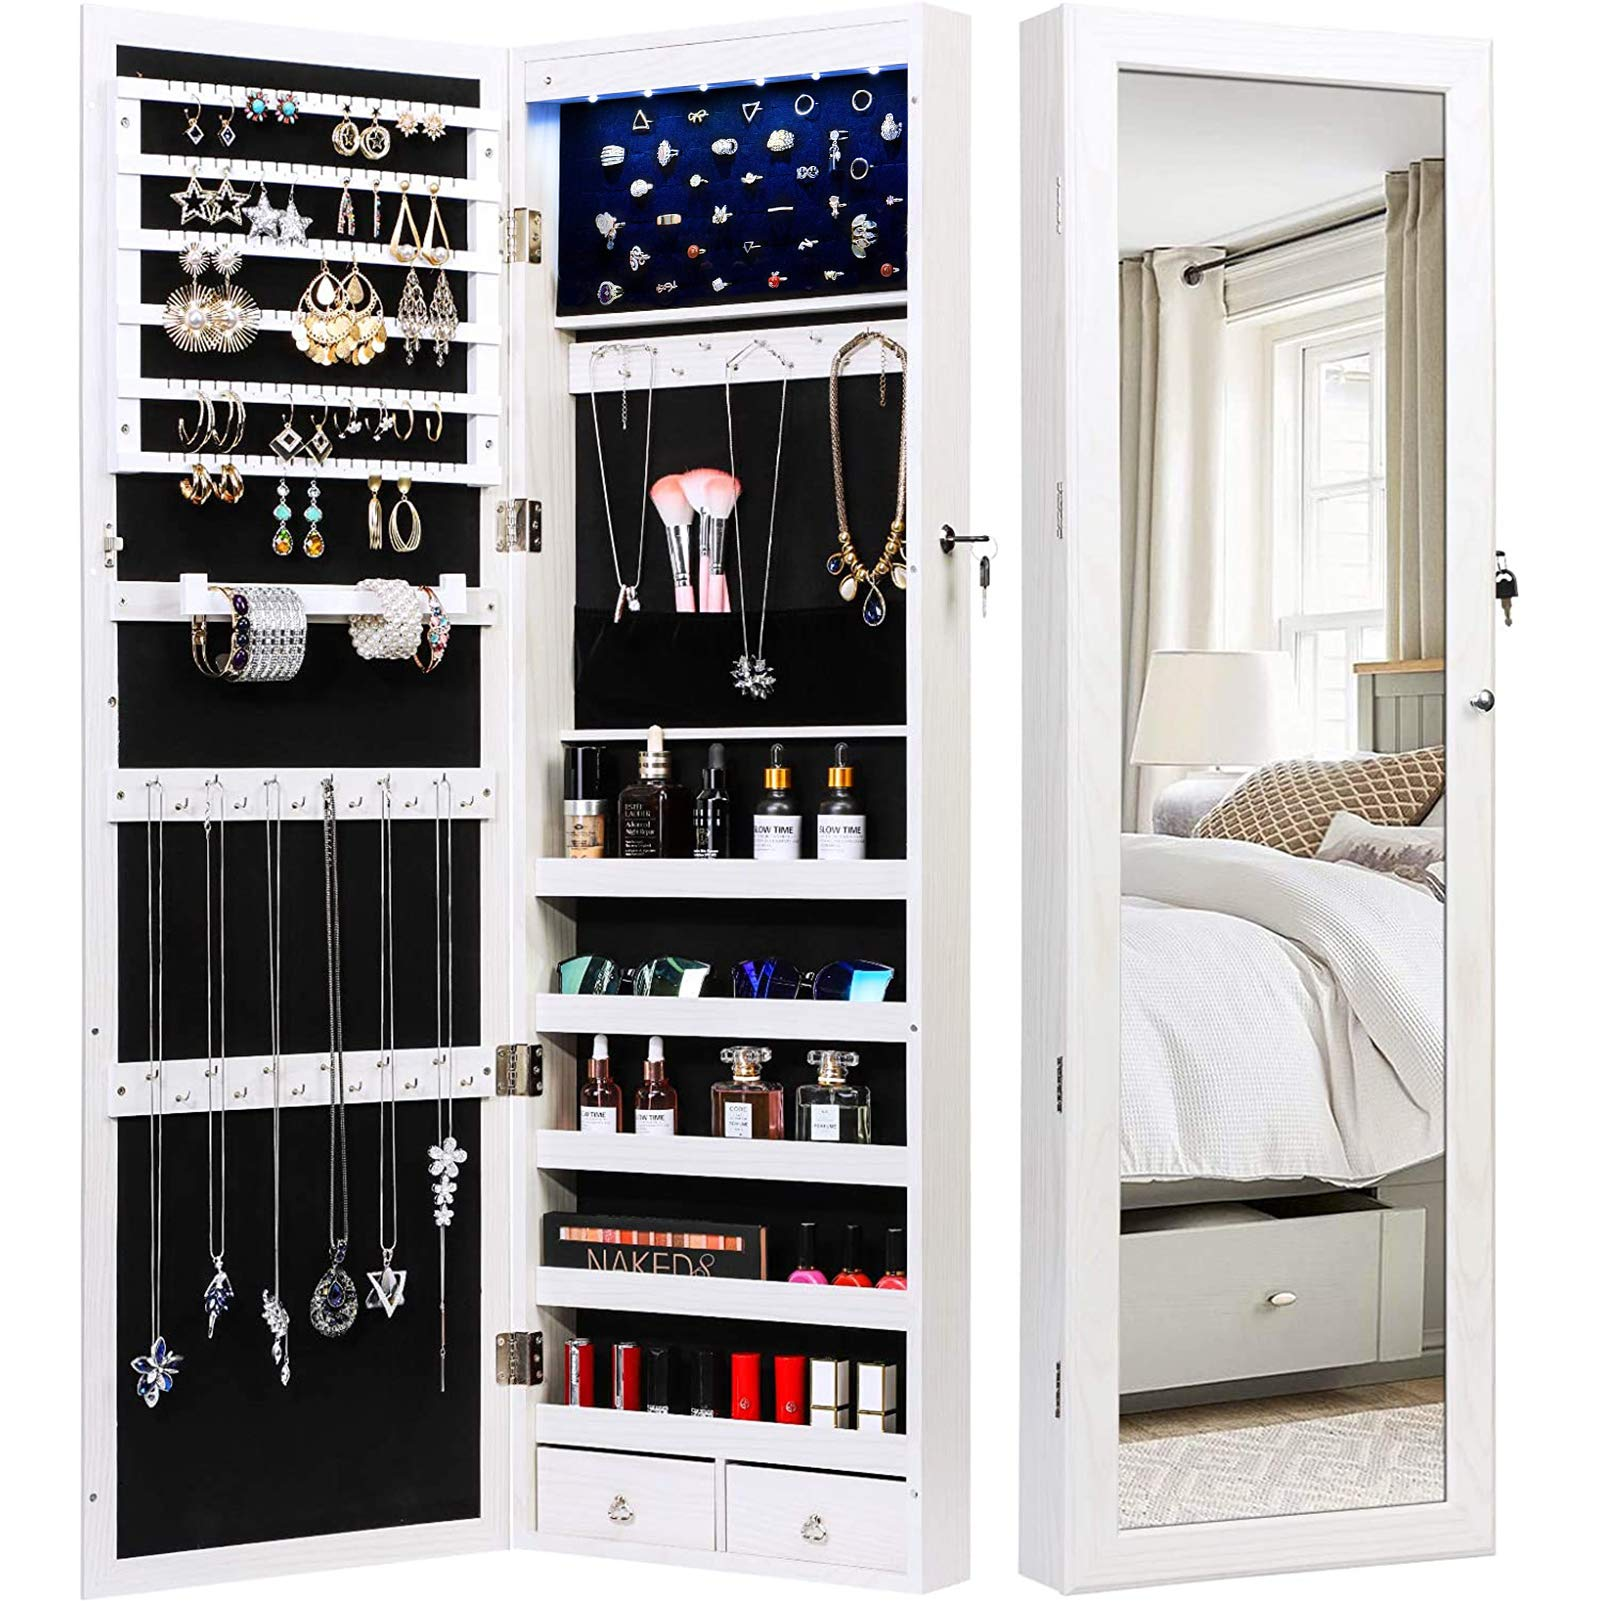 TWING Jewelry Armoire Jewelry Organizer Wall Mounted Lockable 20 LEDs Wall  Mounted Jewelry Armoire With Mirror 20 Drawers Door Large Jewelry Armoire ...